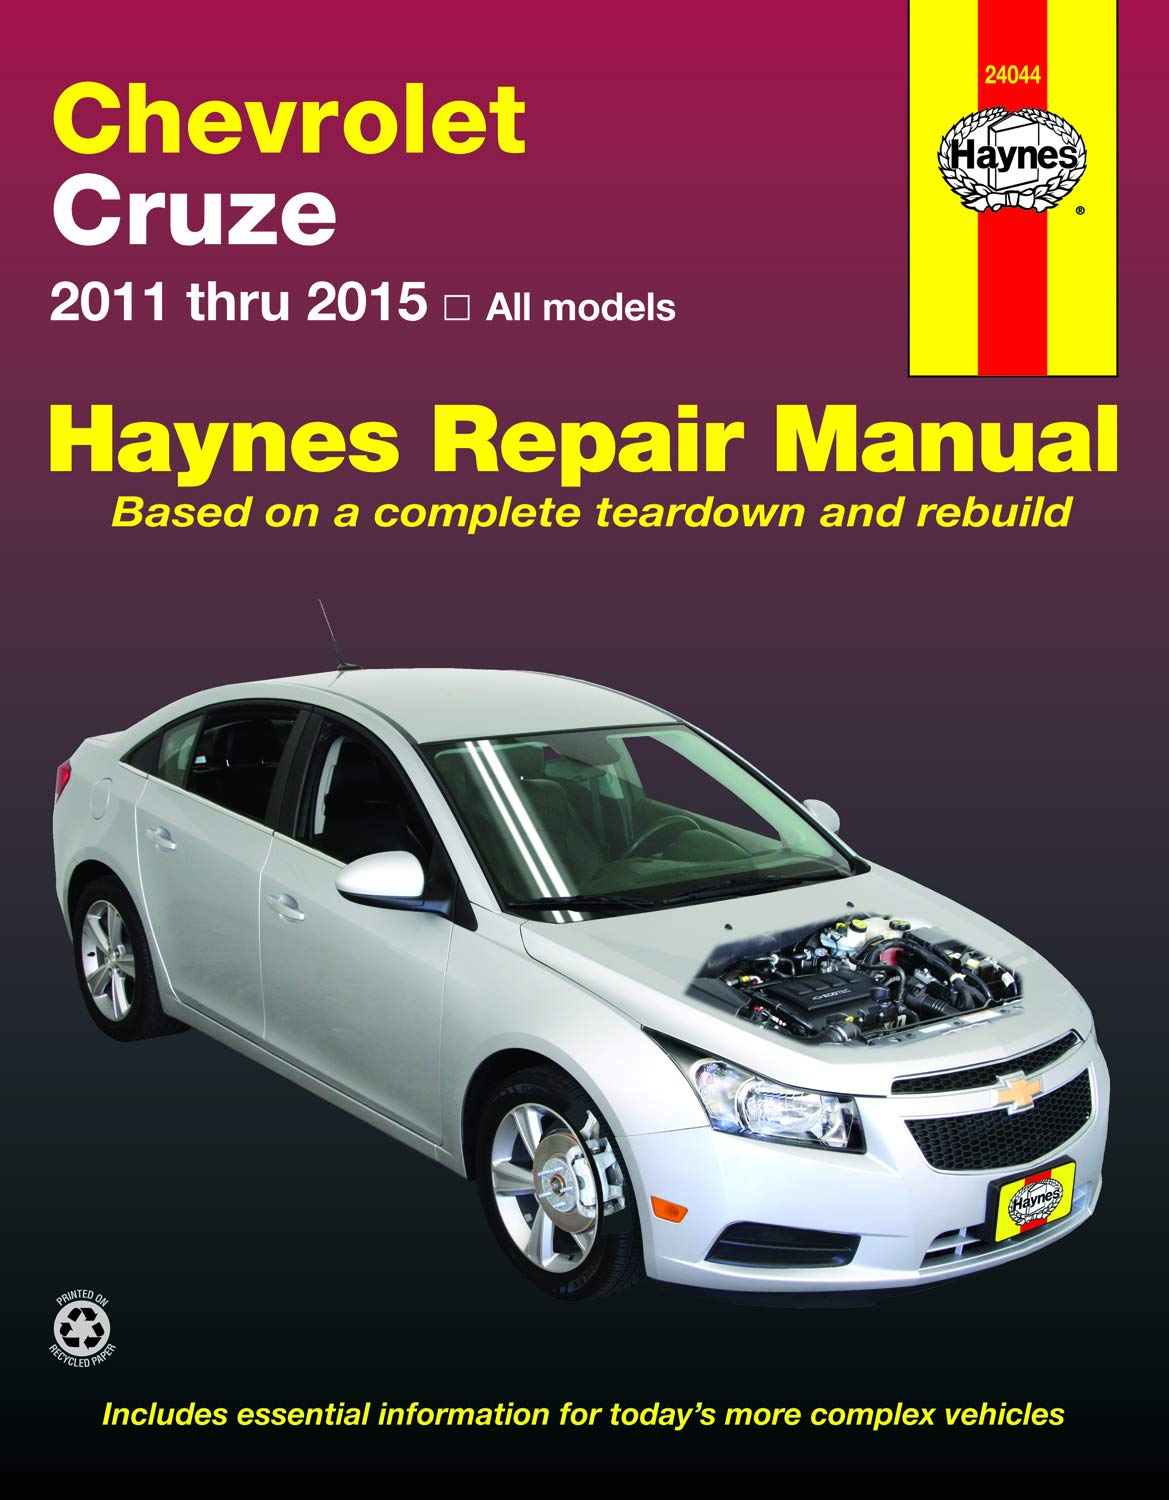 11 2011 Chevrolet Cruze owners manual